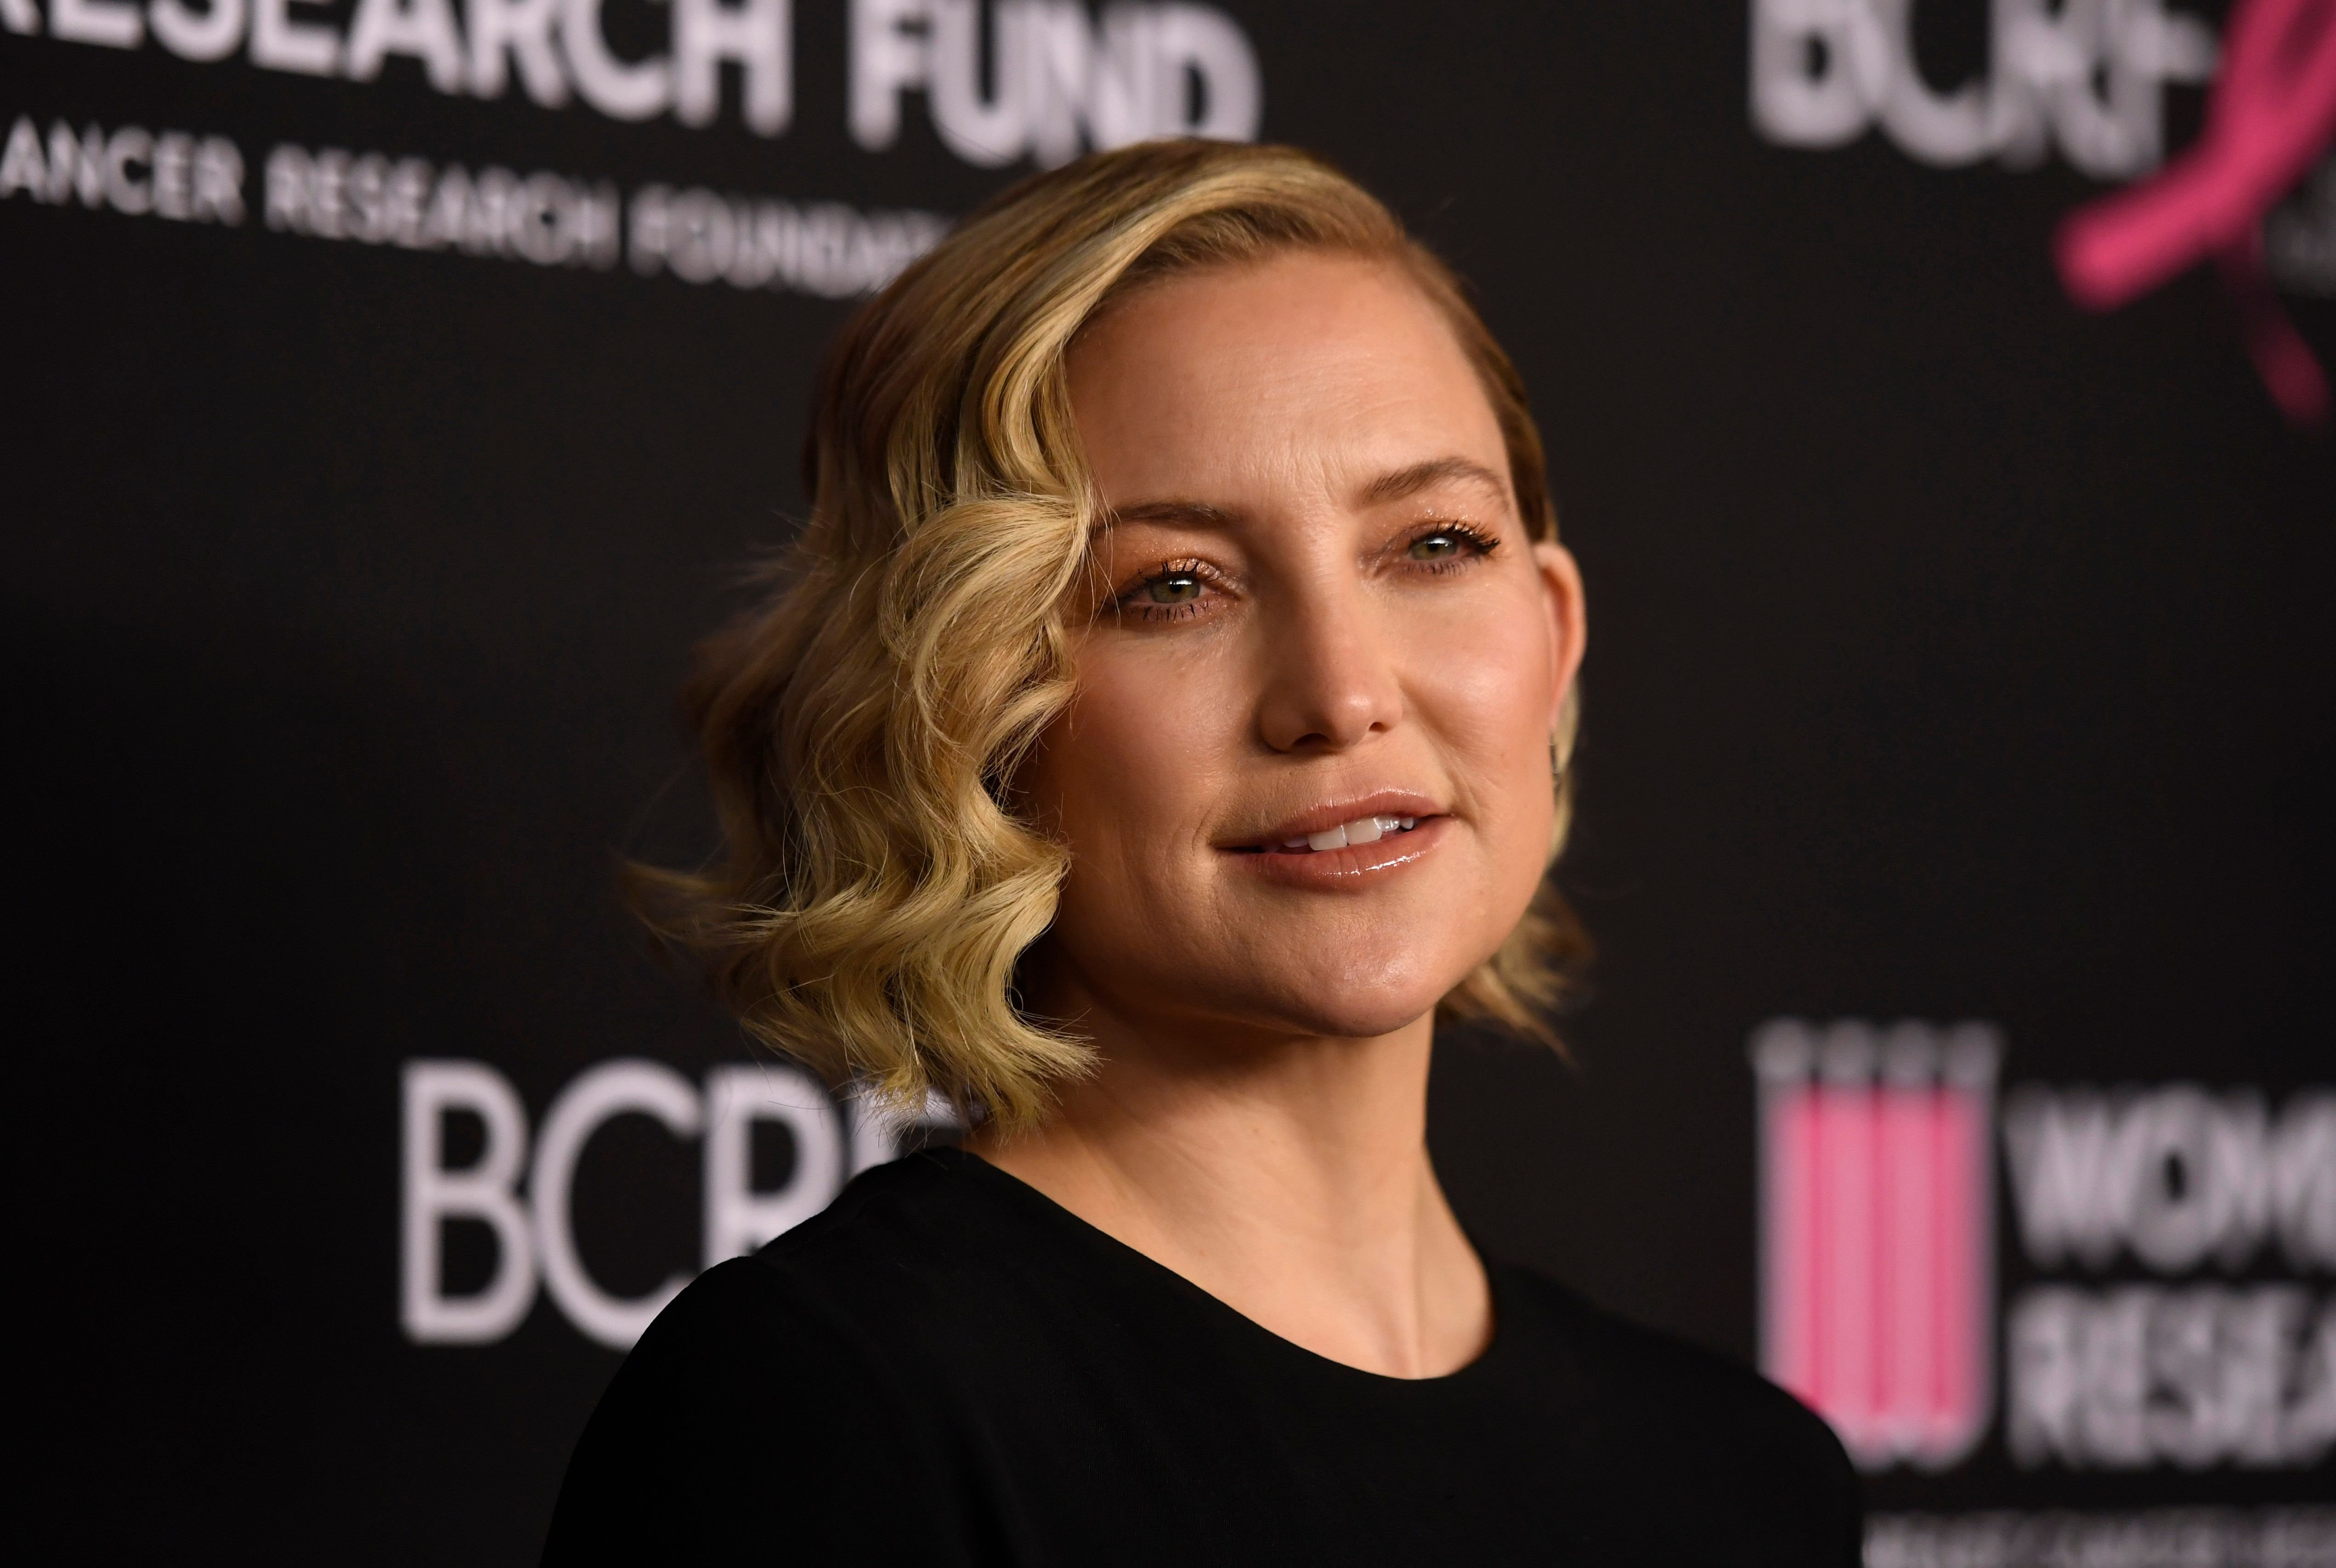 Kate Hudson at the Women's Cancer Research Fund's An Unforgettable Evening Benefit Gala at the Beverly Wilshire Four Seasons Hotel on February 28, 2019 | Photo: Getty Images